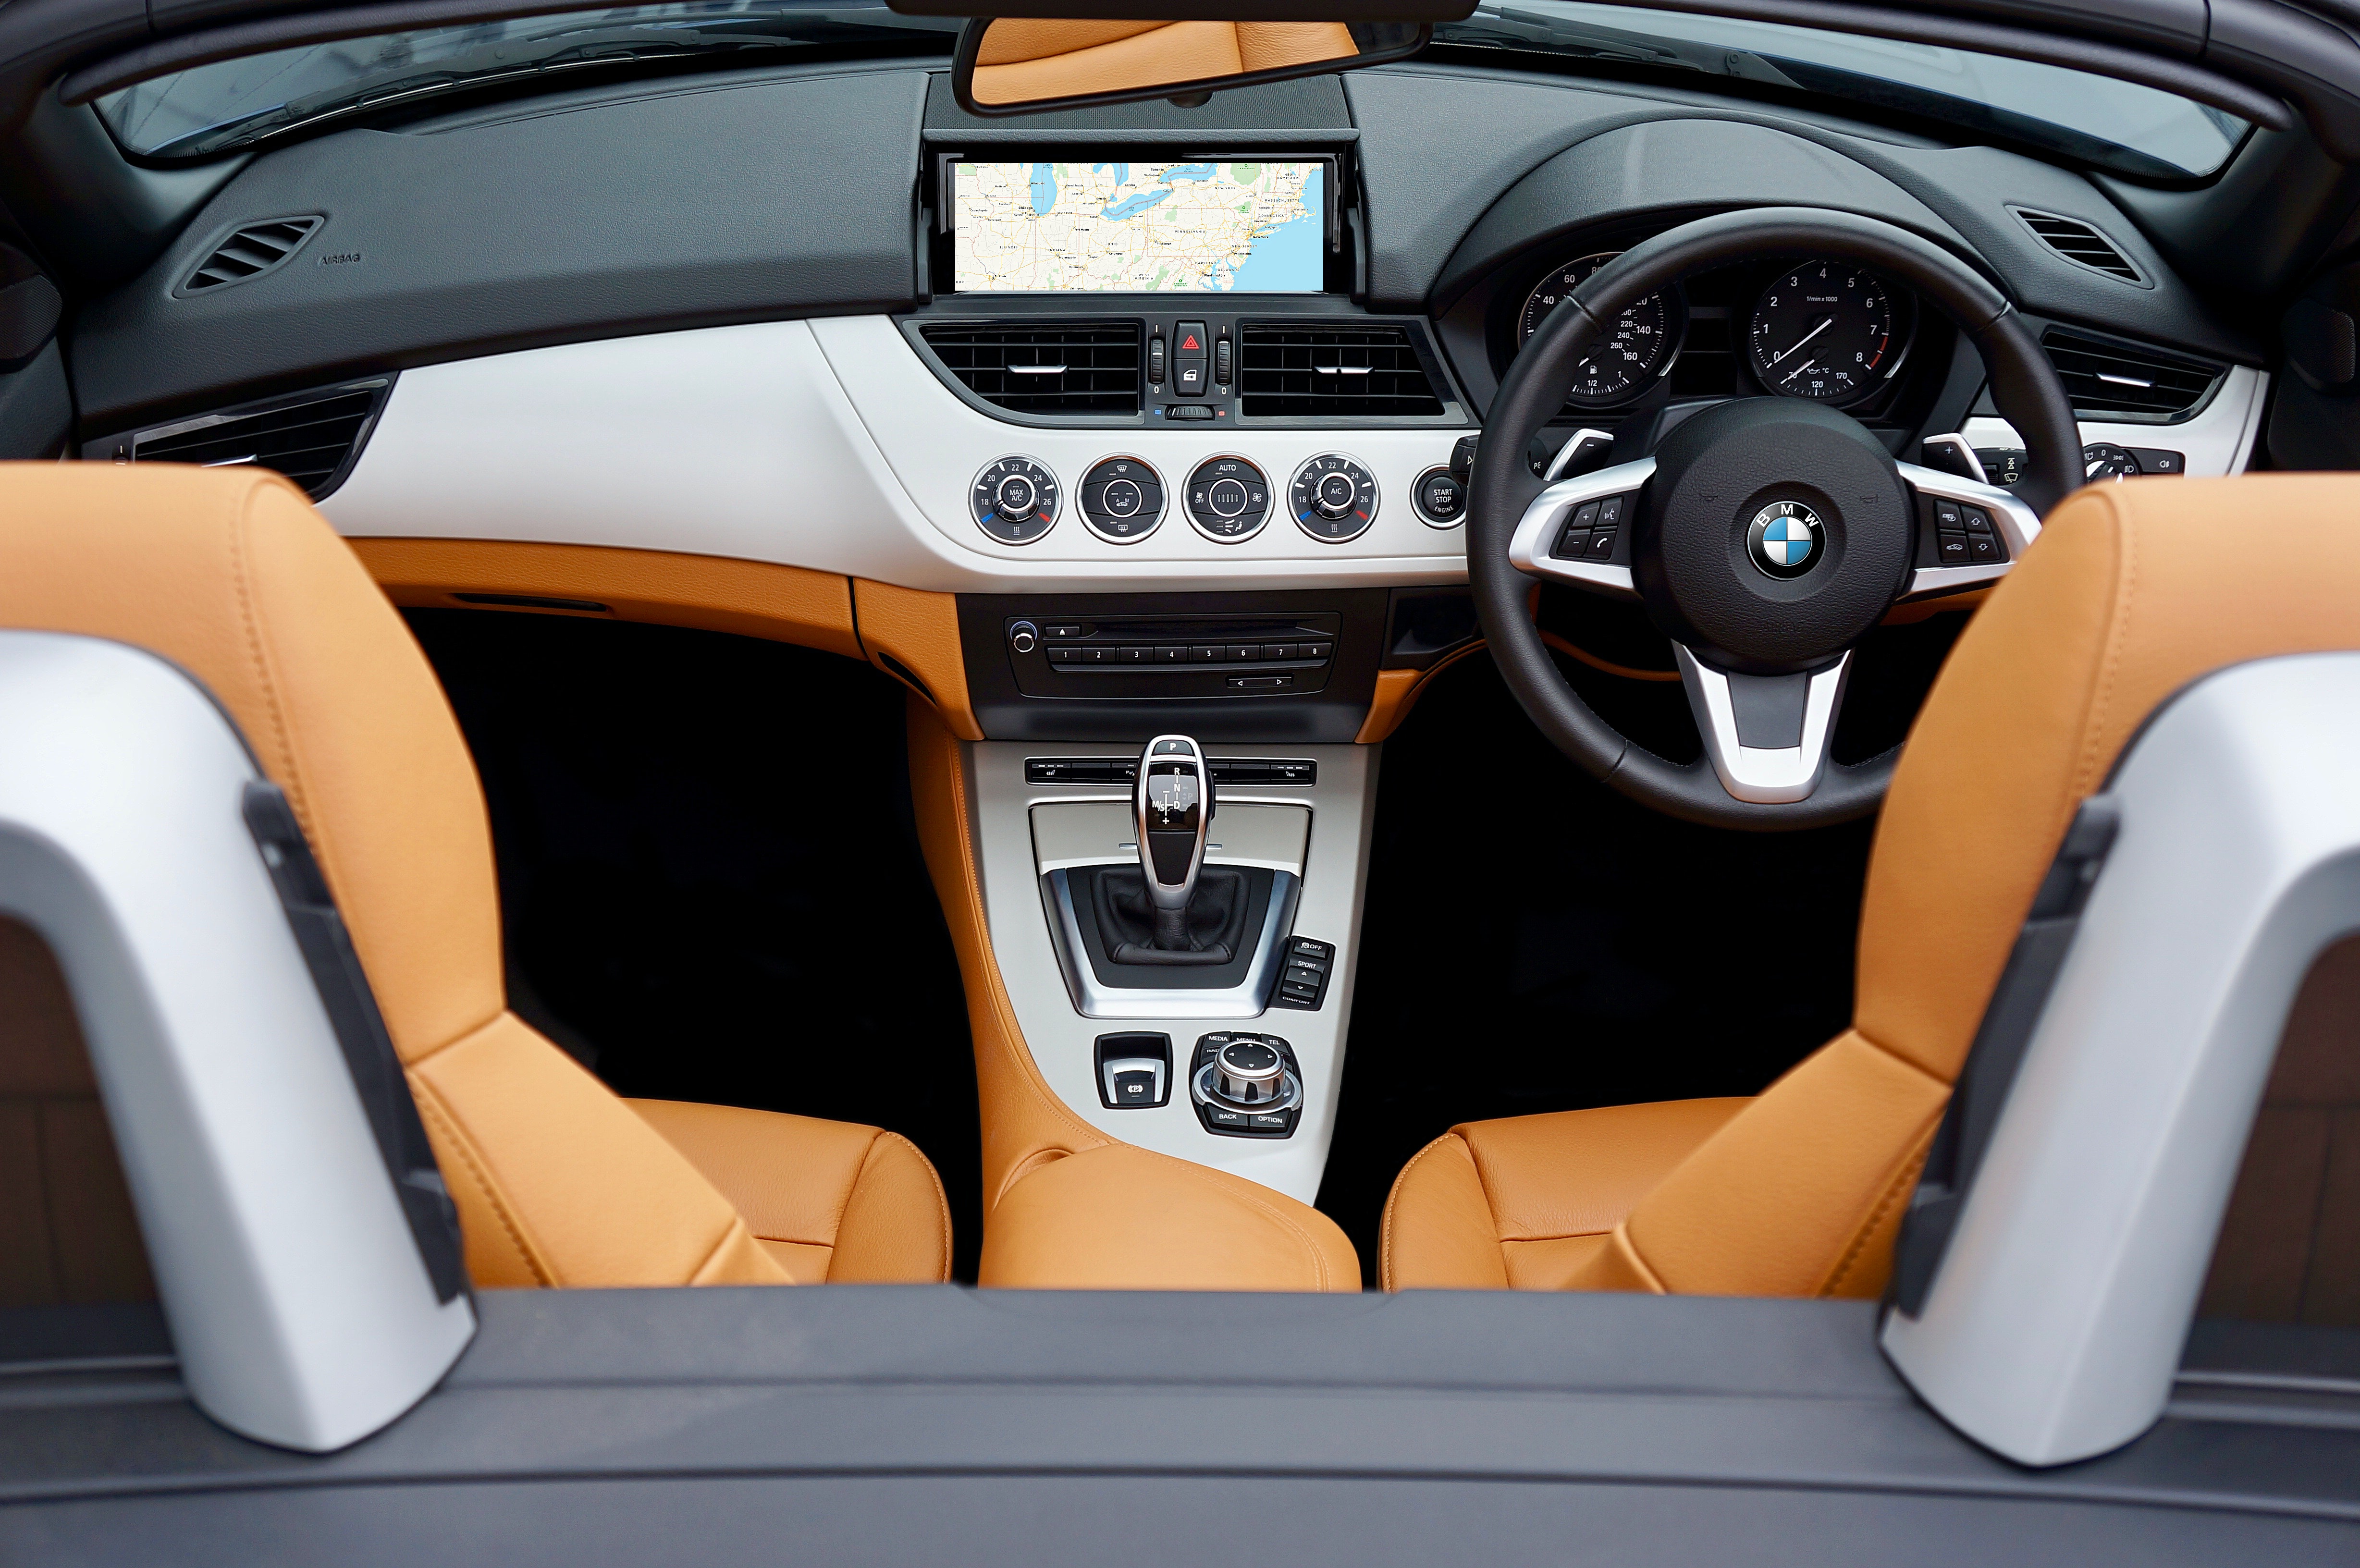 Black Brown And Gray Bmw Car Interior View Free Stock Photo